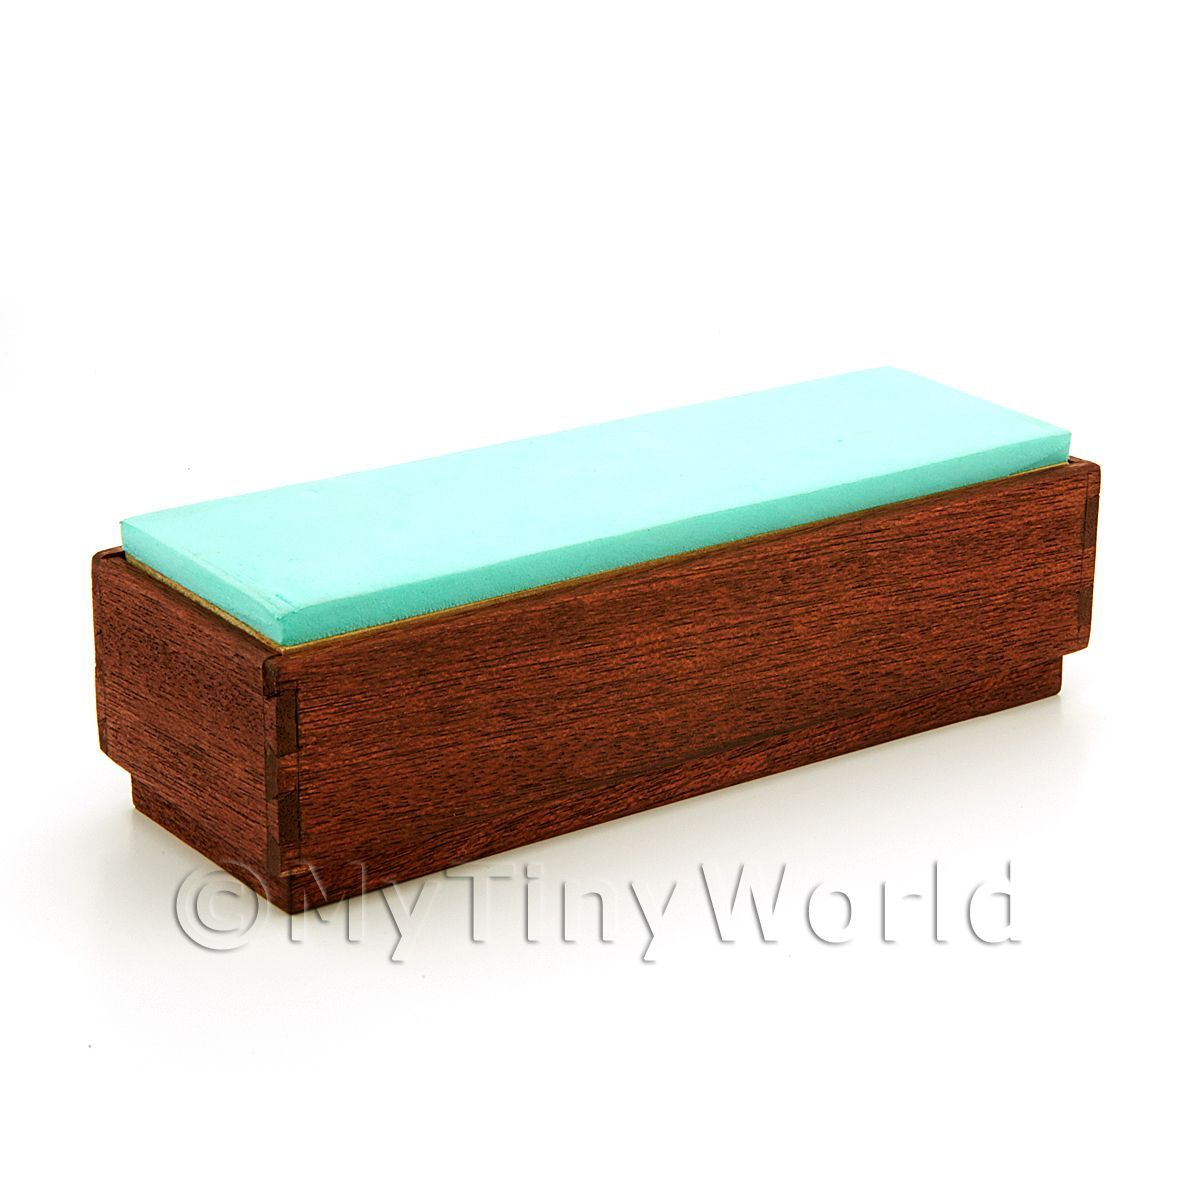 Handmade Dolls House Miniature Shop Bench Seat